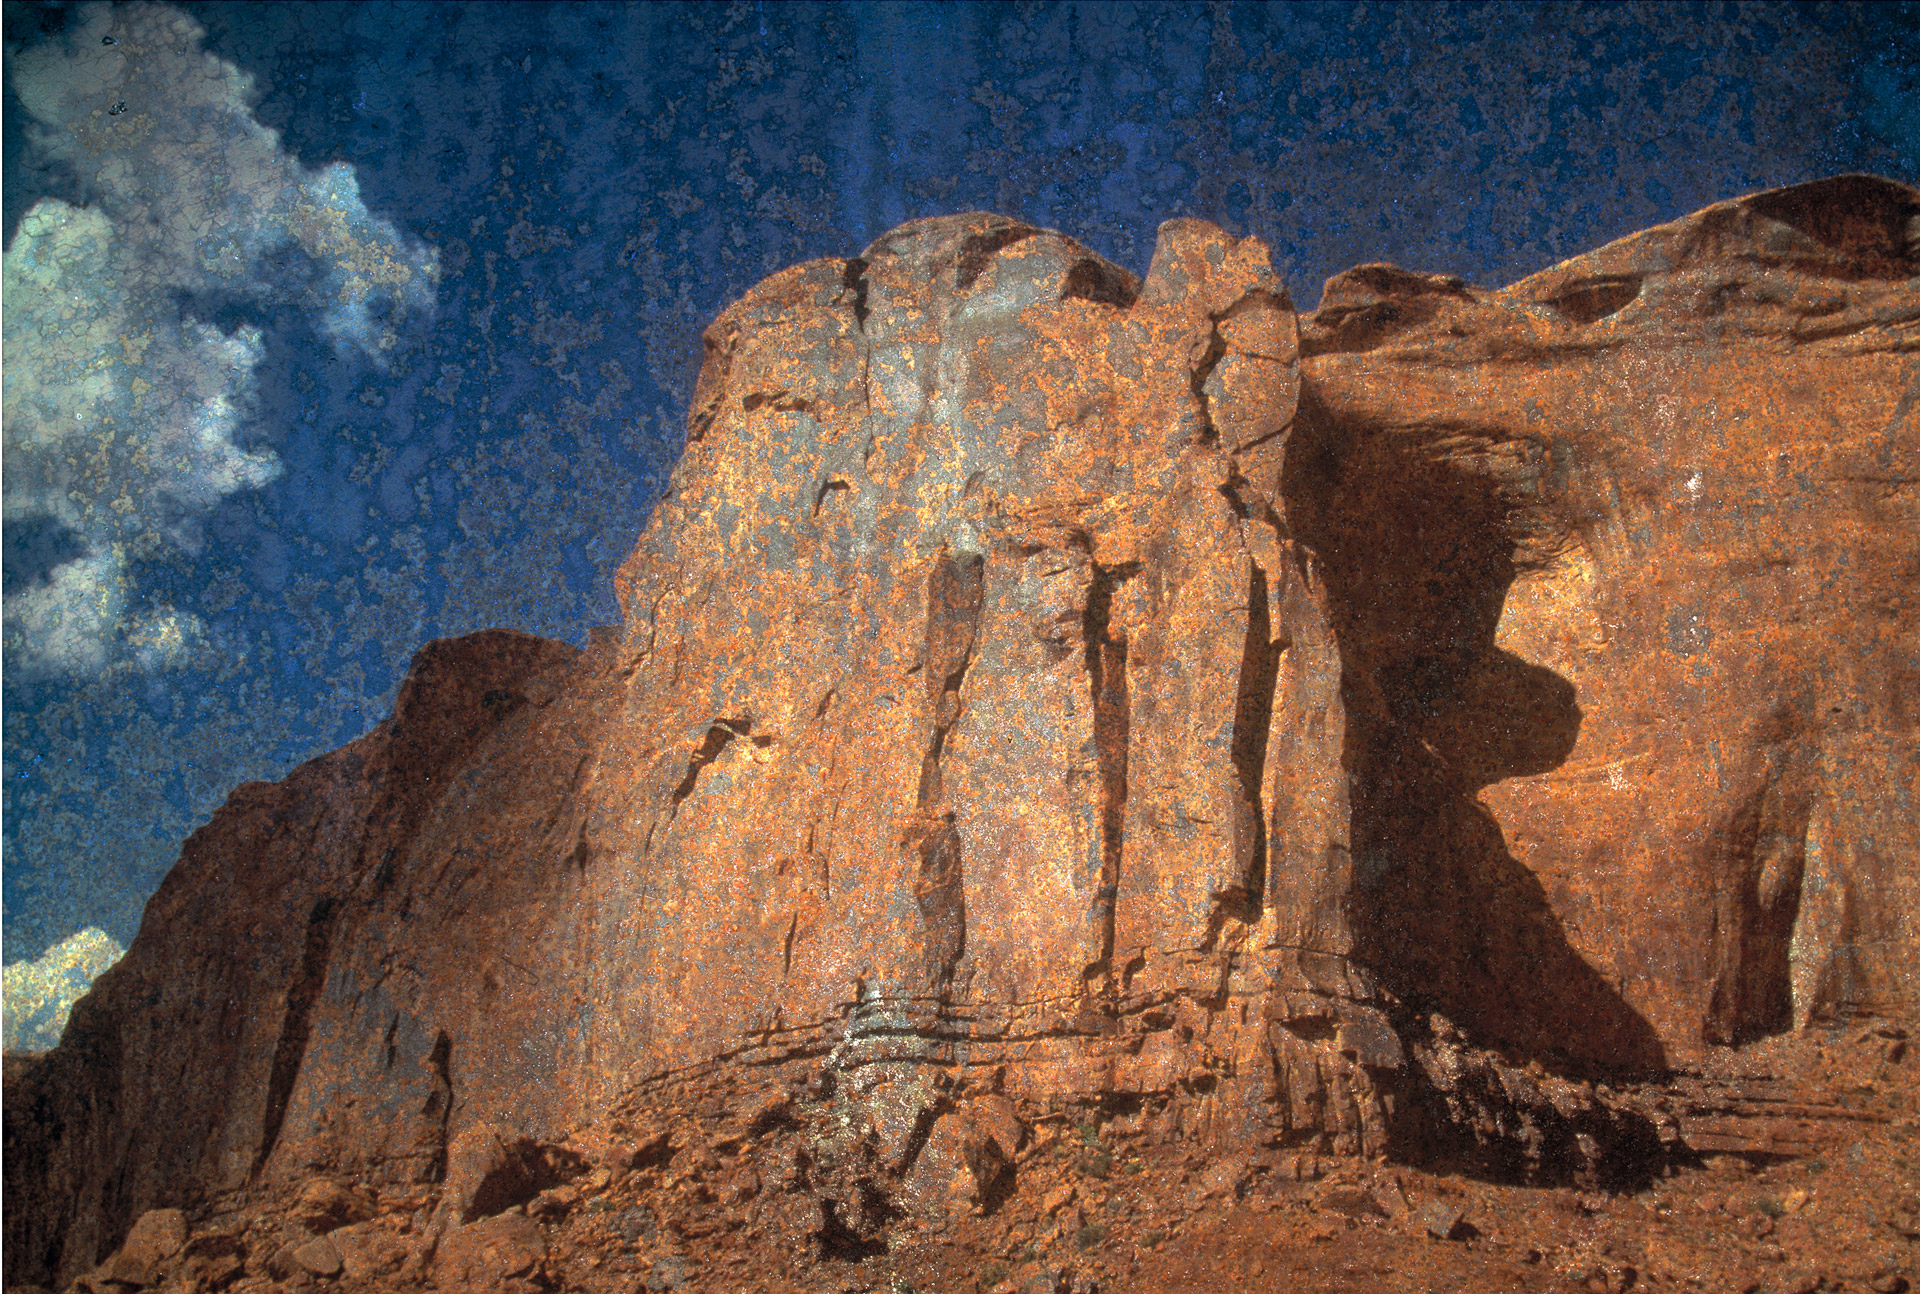 Rock formations in Monument Valley on iron plate